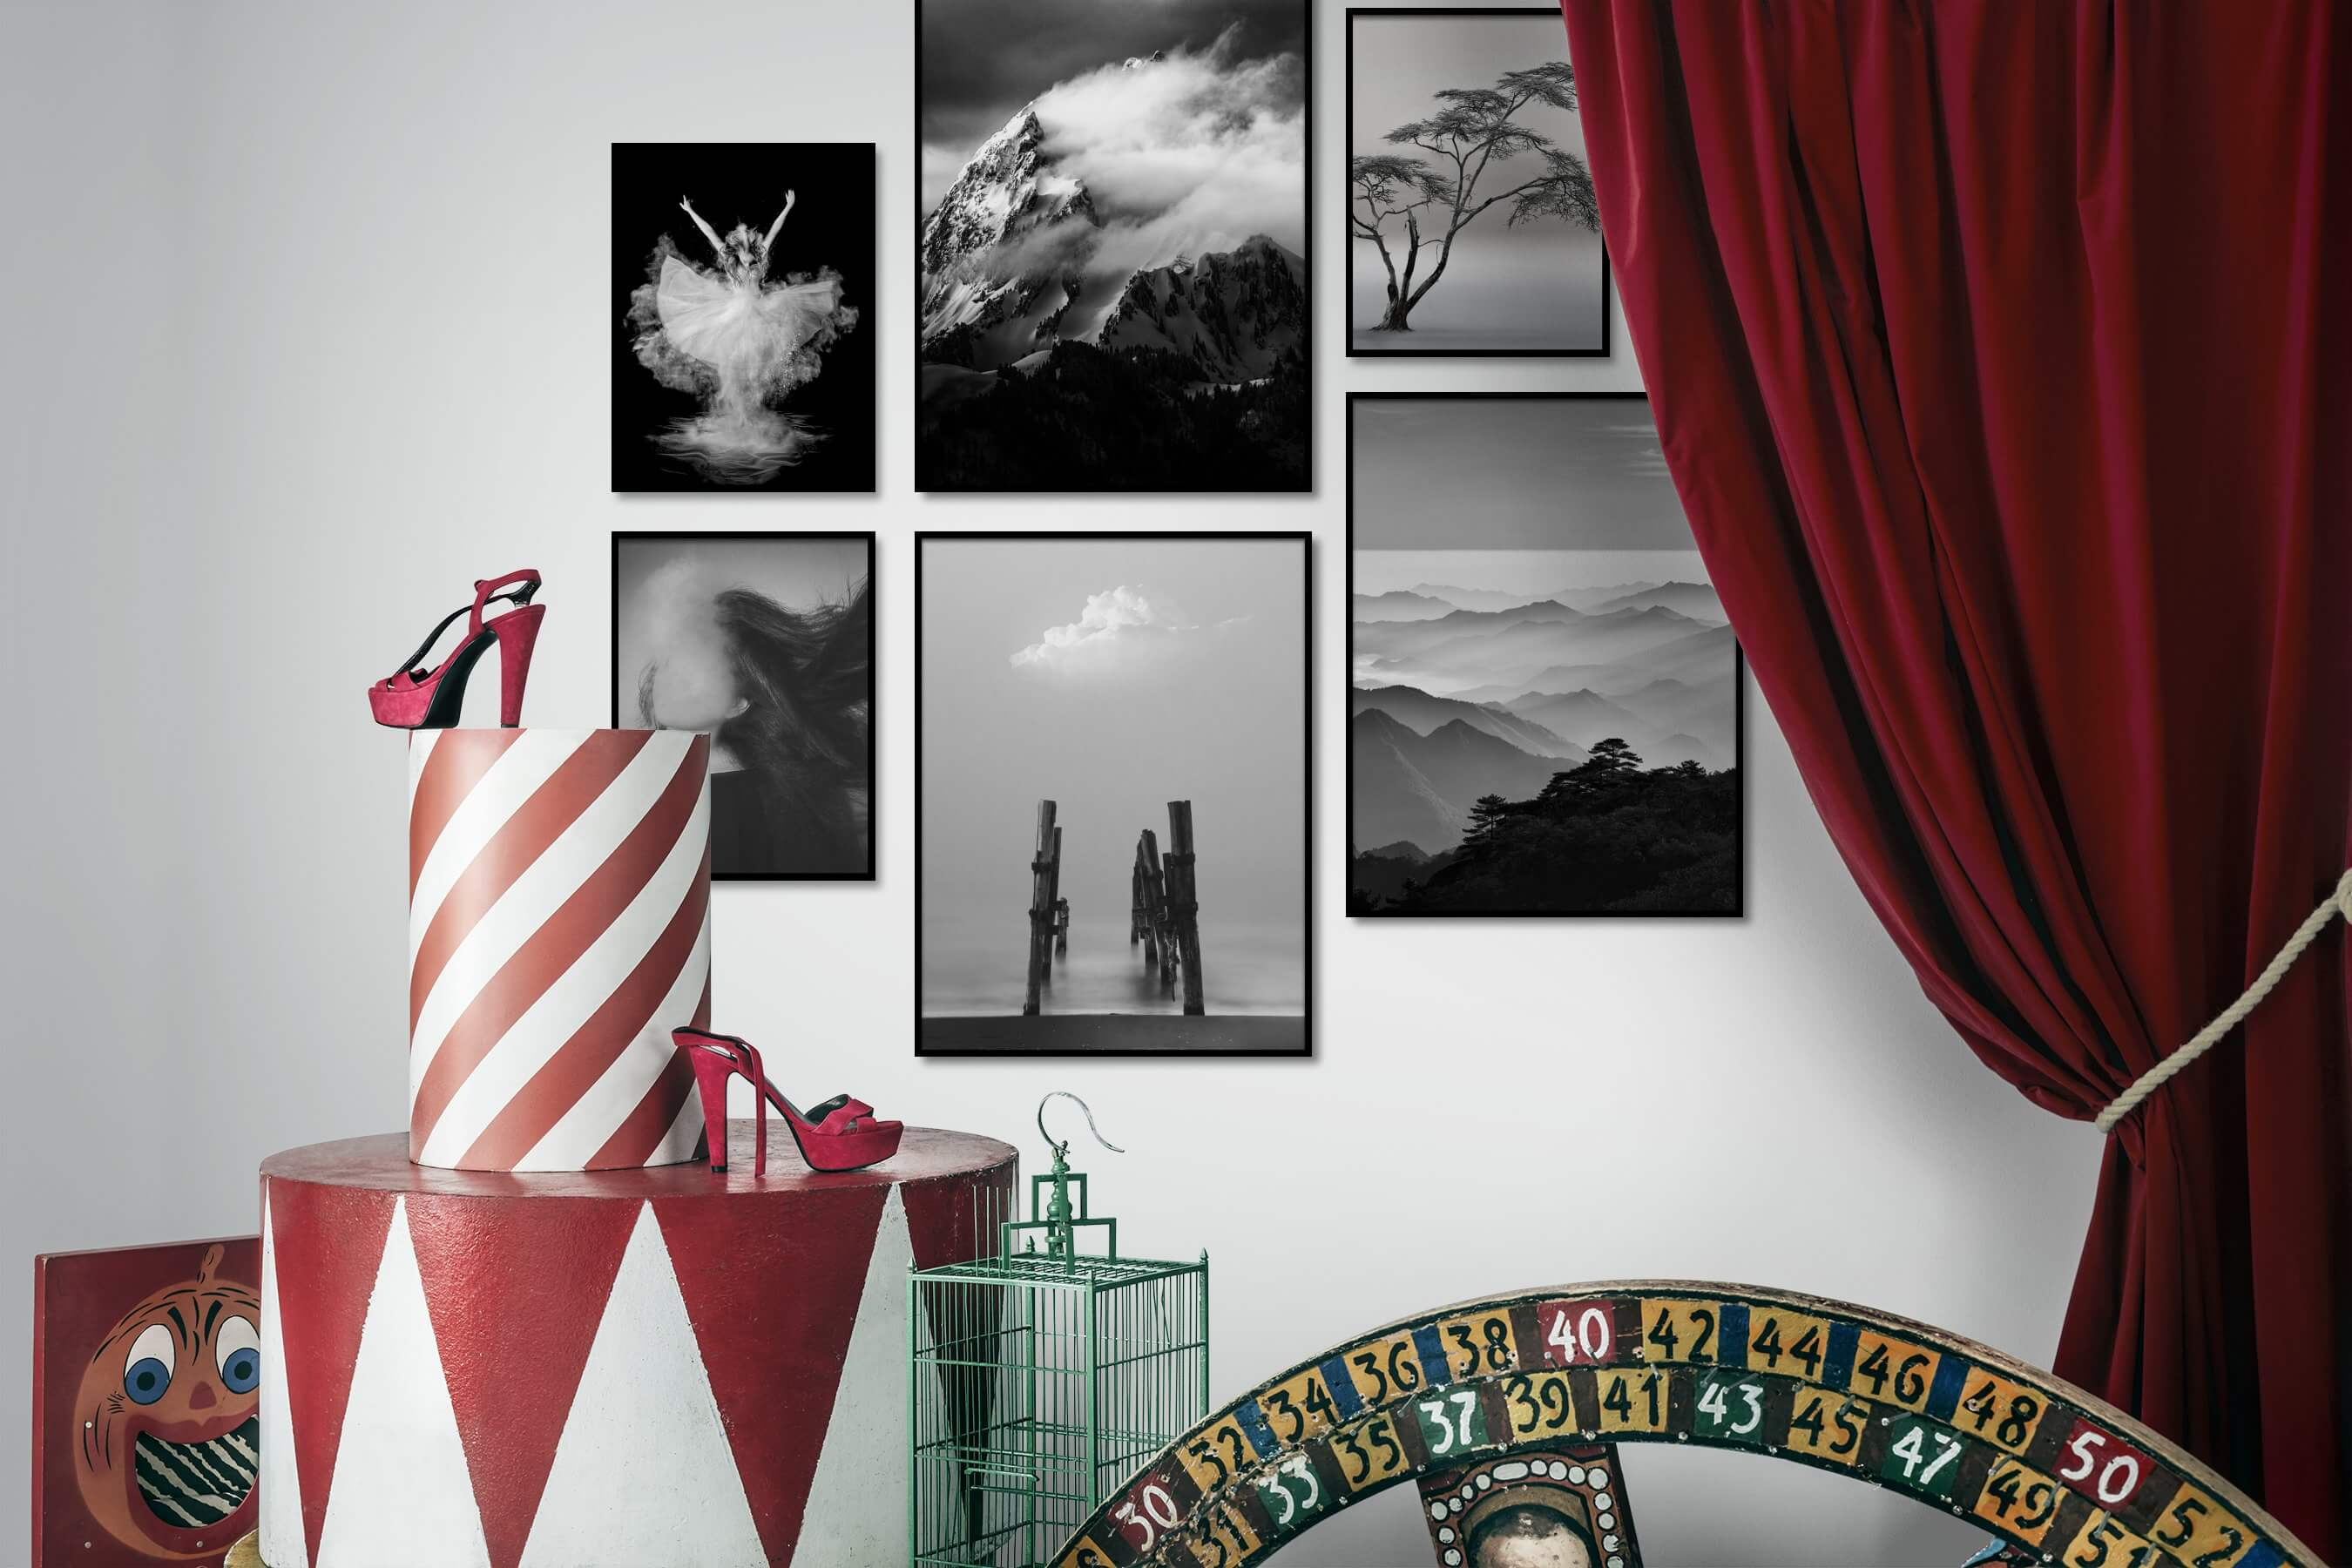 Gallery wall idea with six framed pictures arranged on a wall depicting Fashion & Beauty, Black & White, Dark Tones, For the Moderate, Nature, Mindfulness, Artsy, Beach & Water, and For the Minimalist